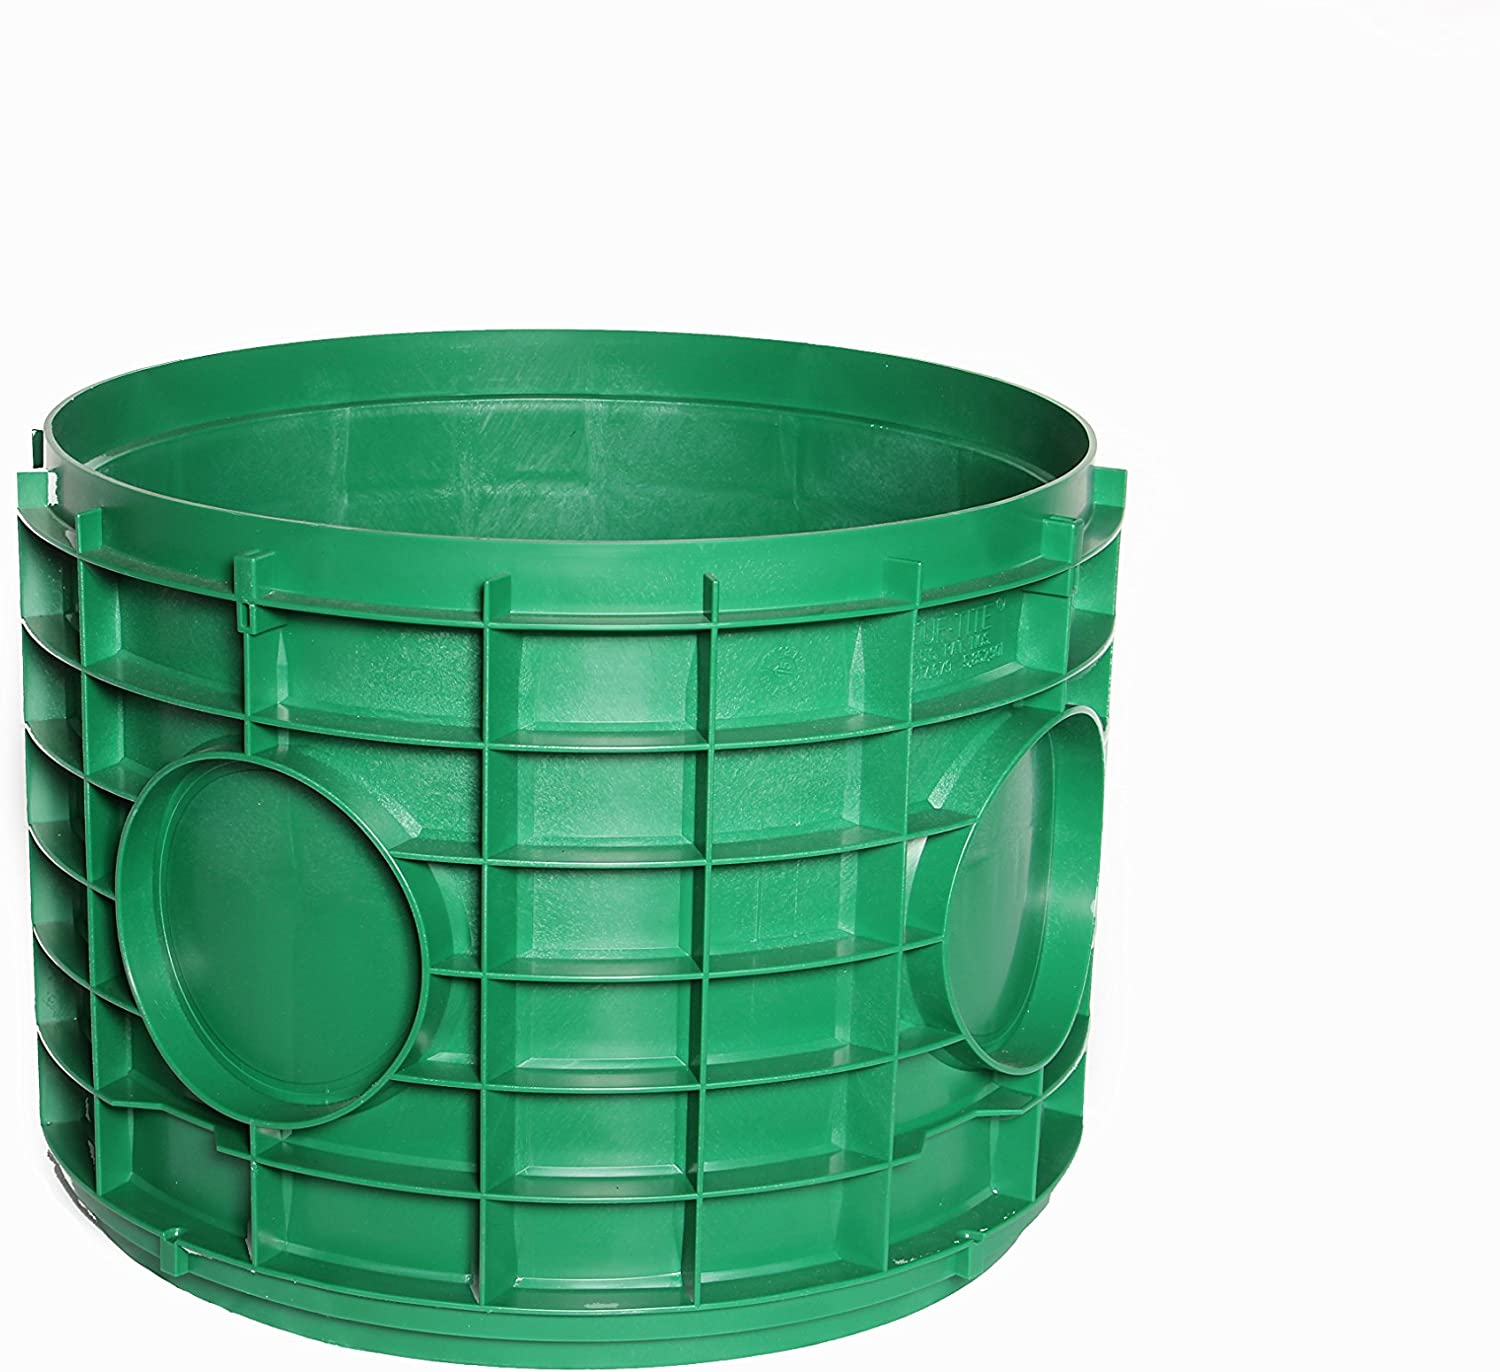 Green Riser Tight Seal Plumbing Fixture Pump Parts Septic Tank Cover 18 in